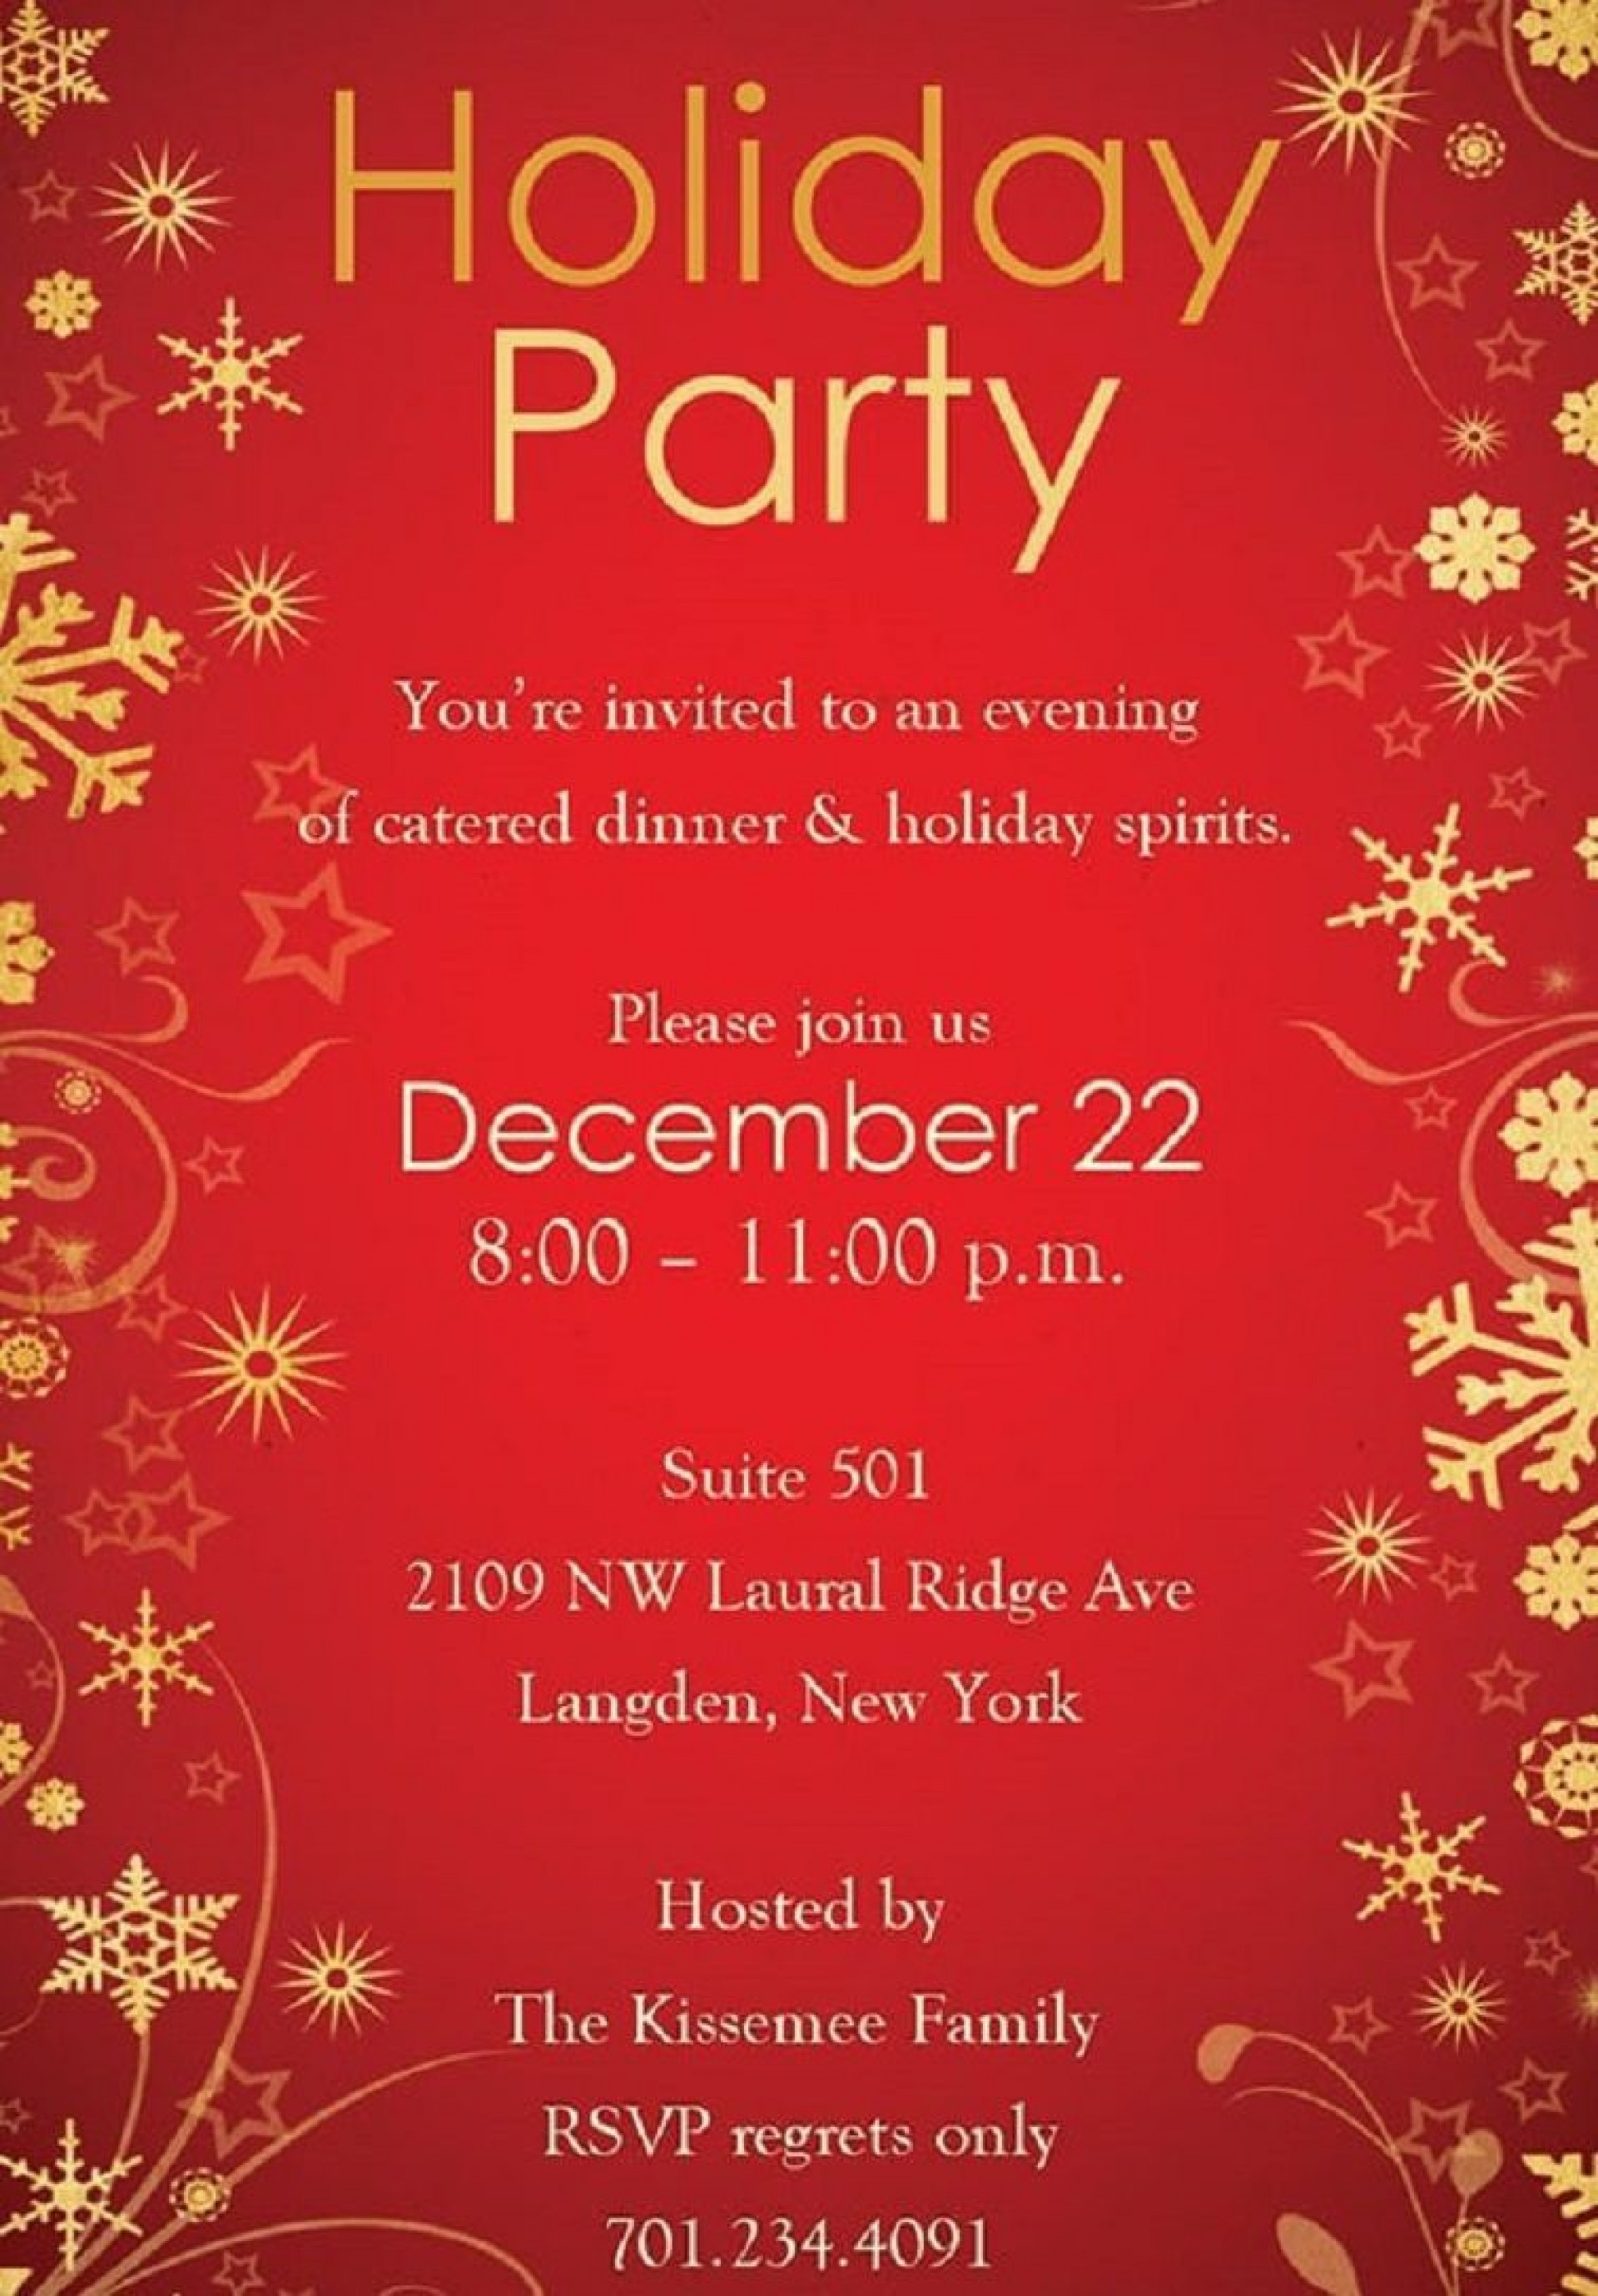 001 Unusual Christma Party Invite Template Word Image  Holiday Free Invitation Wording Example1920